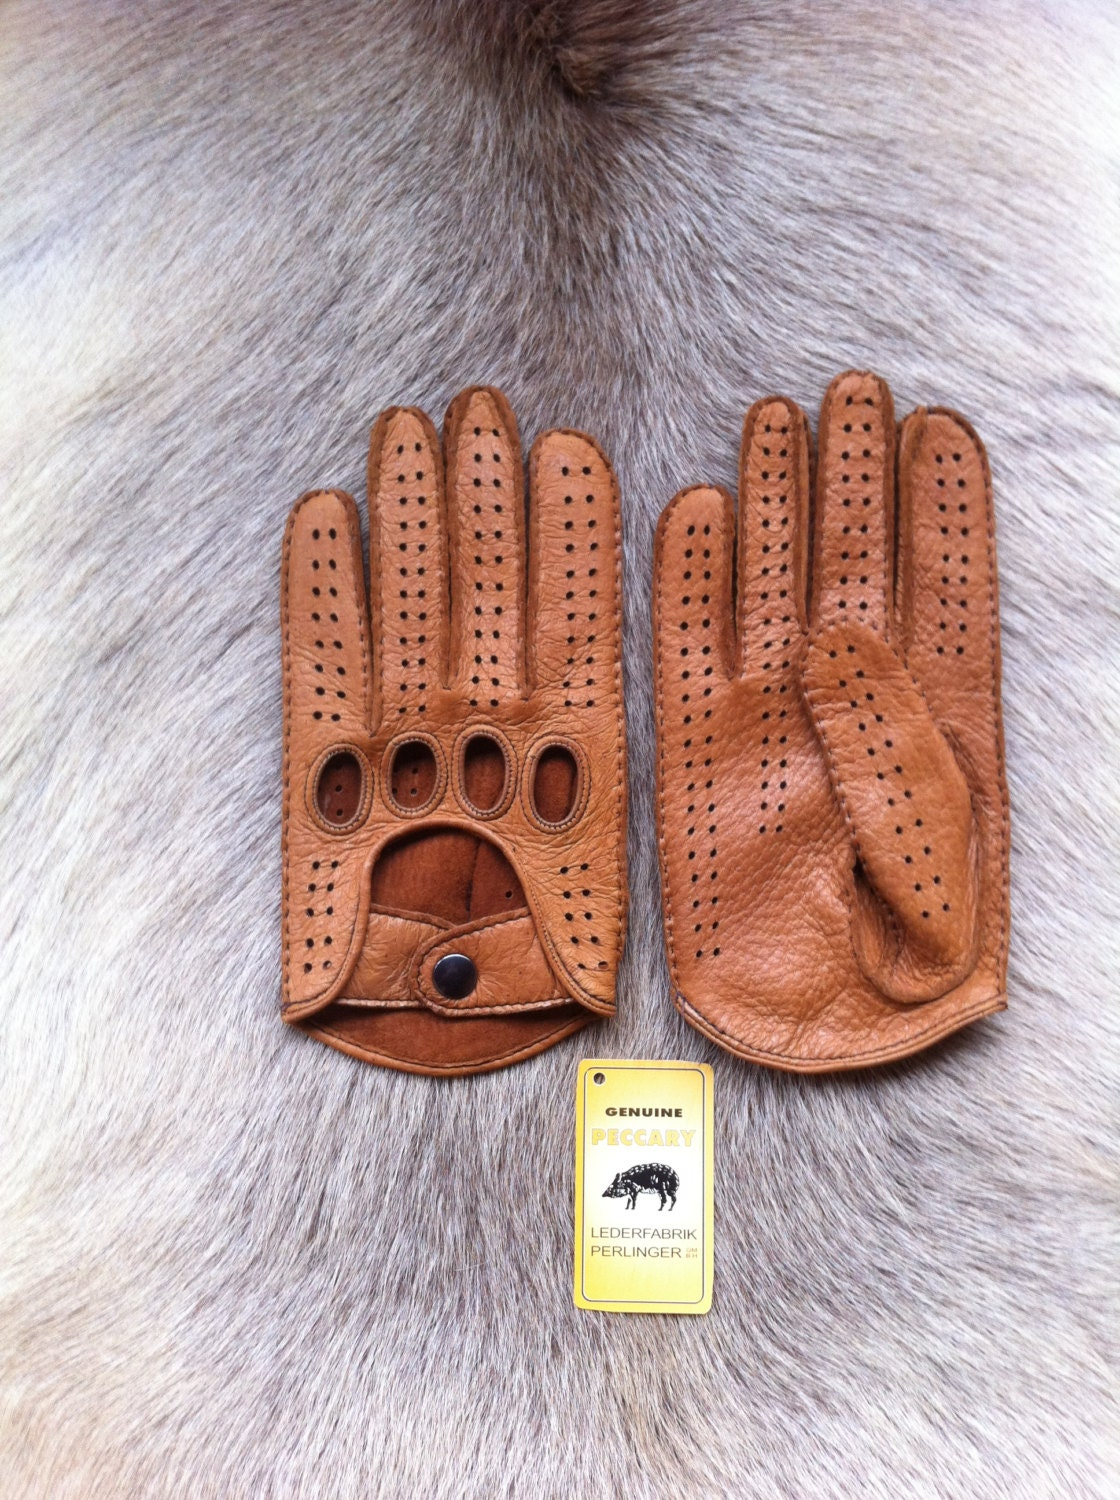 Mens gloves for driving -  Men S Peccary Leather Gloves Driving Gloves Zoom